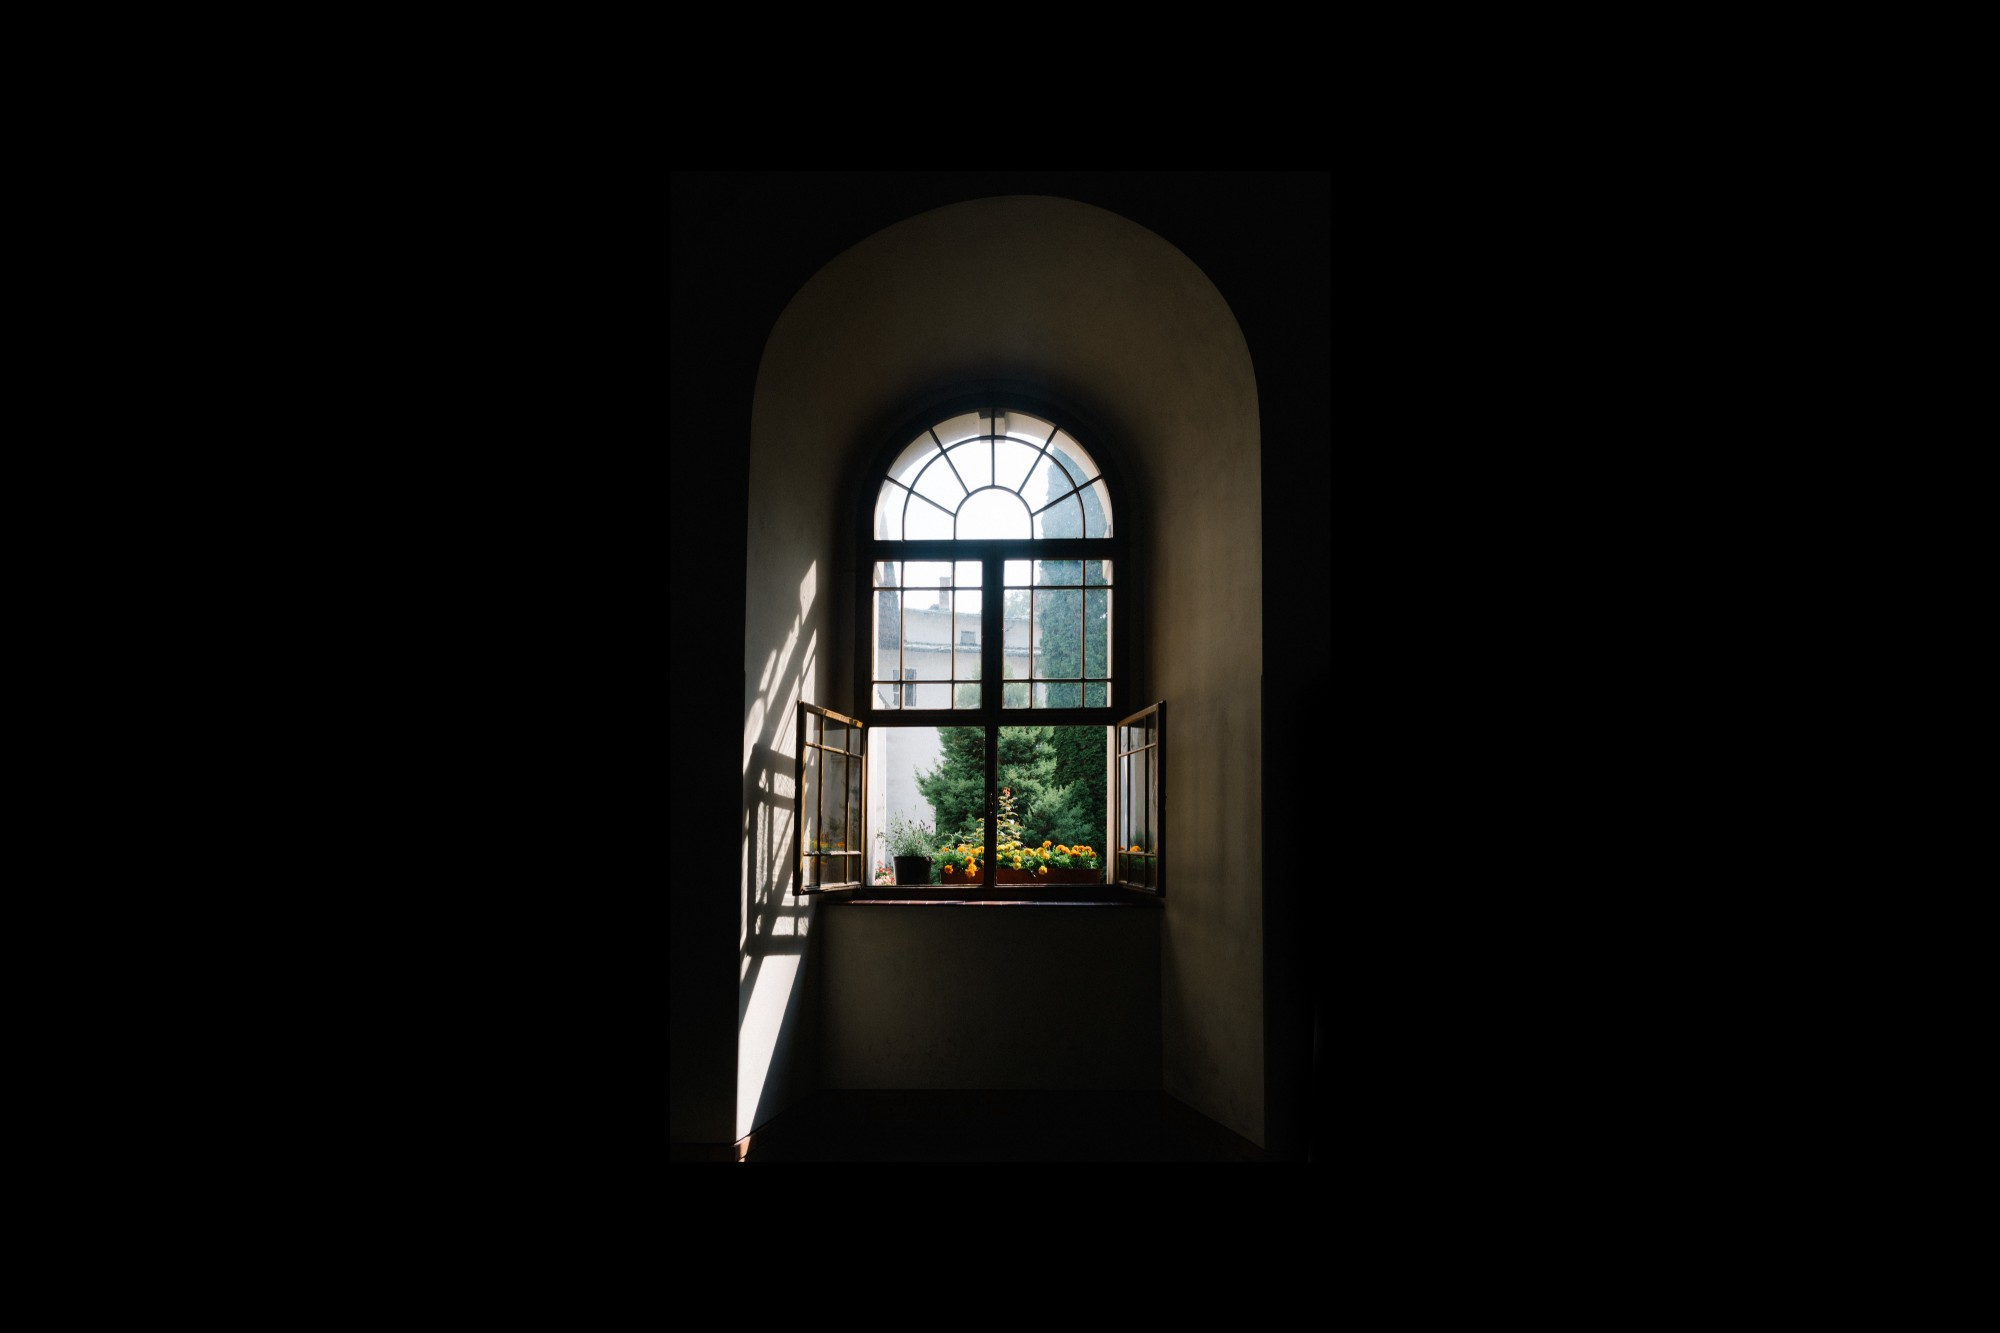 View of a window from inside a house, with the Sun beaming in.